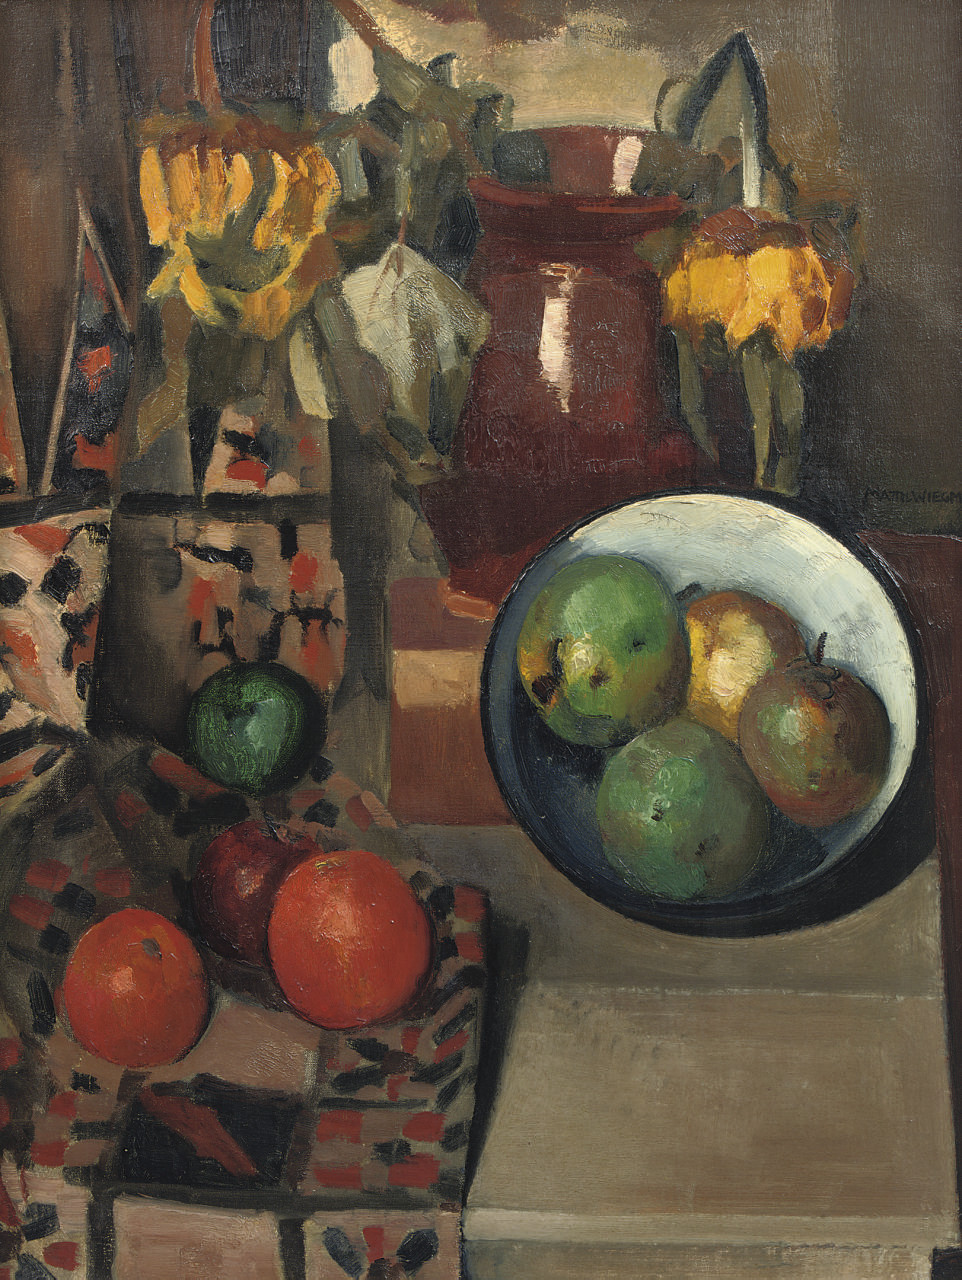 A still life with apples